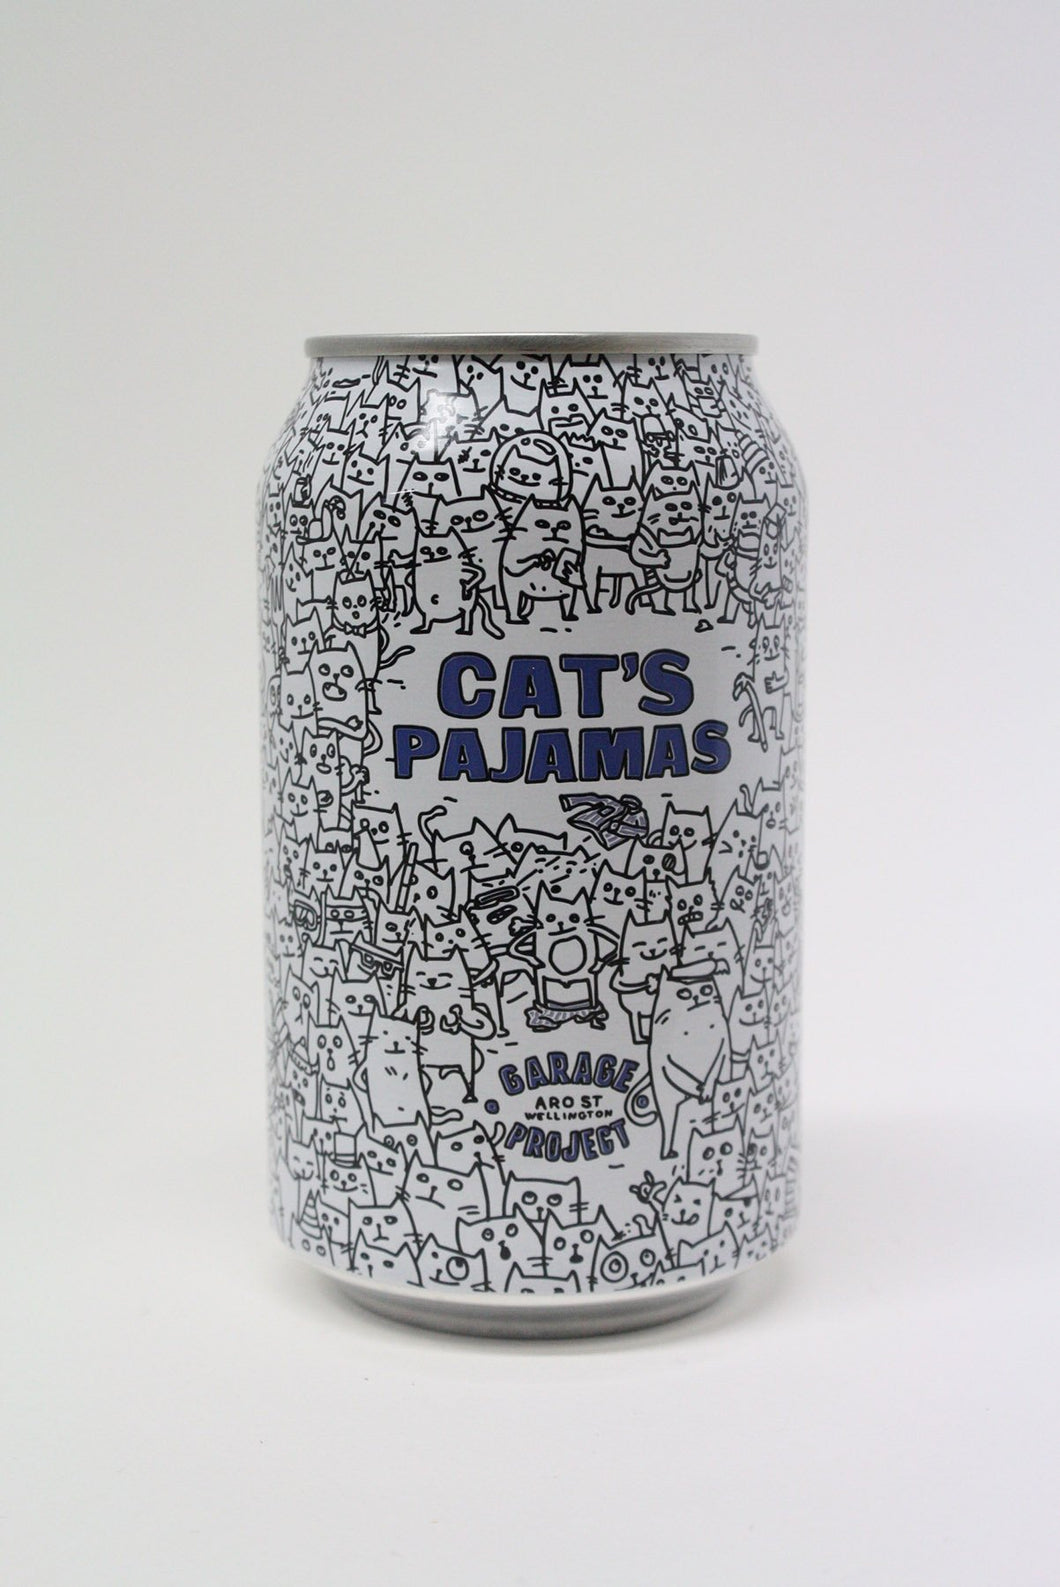 Garage Project - Cats Pyjamas Cream Ale 330ml